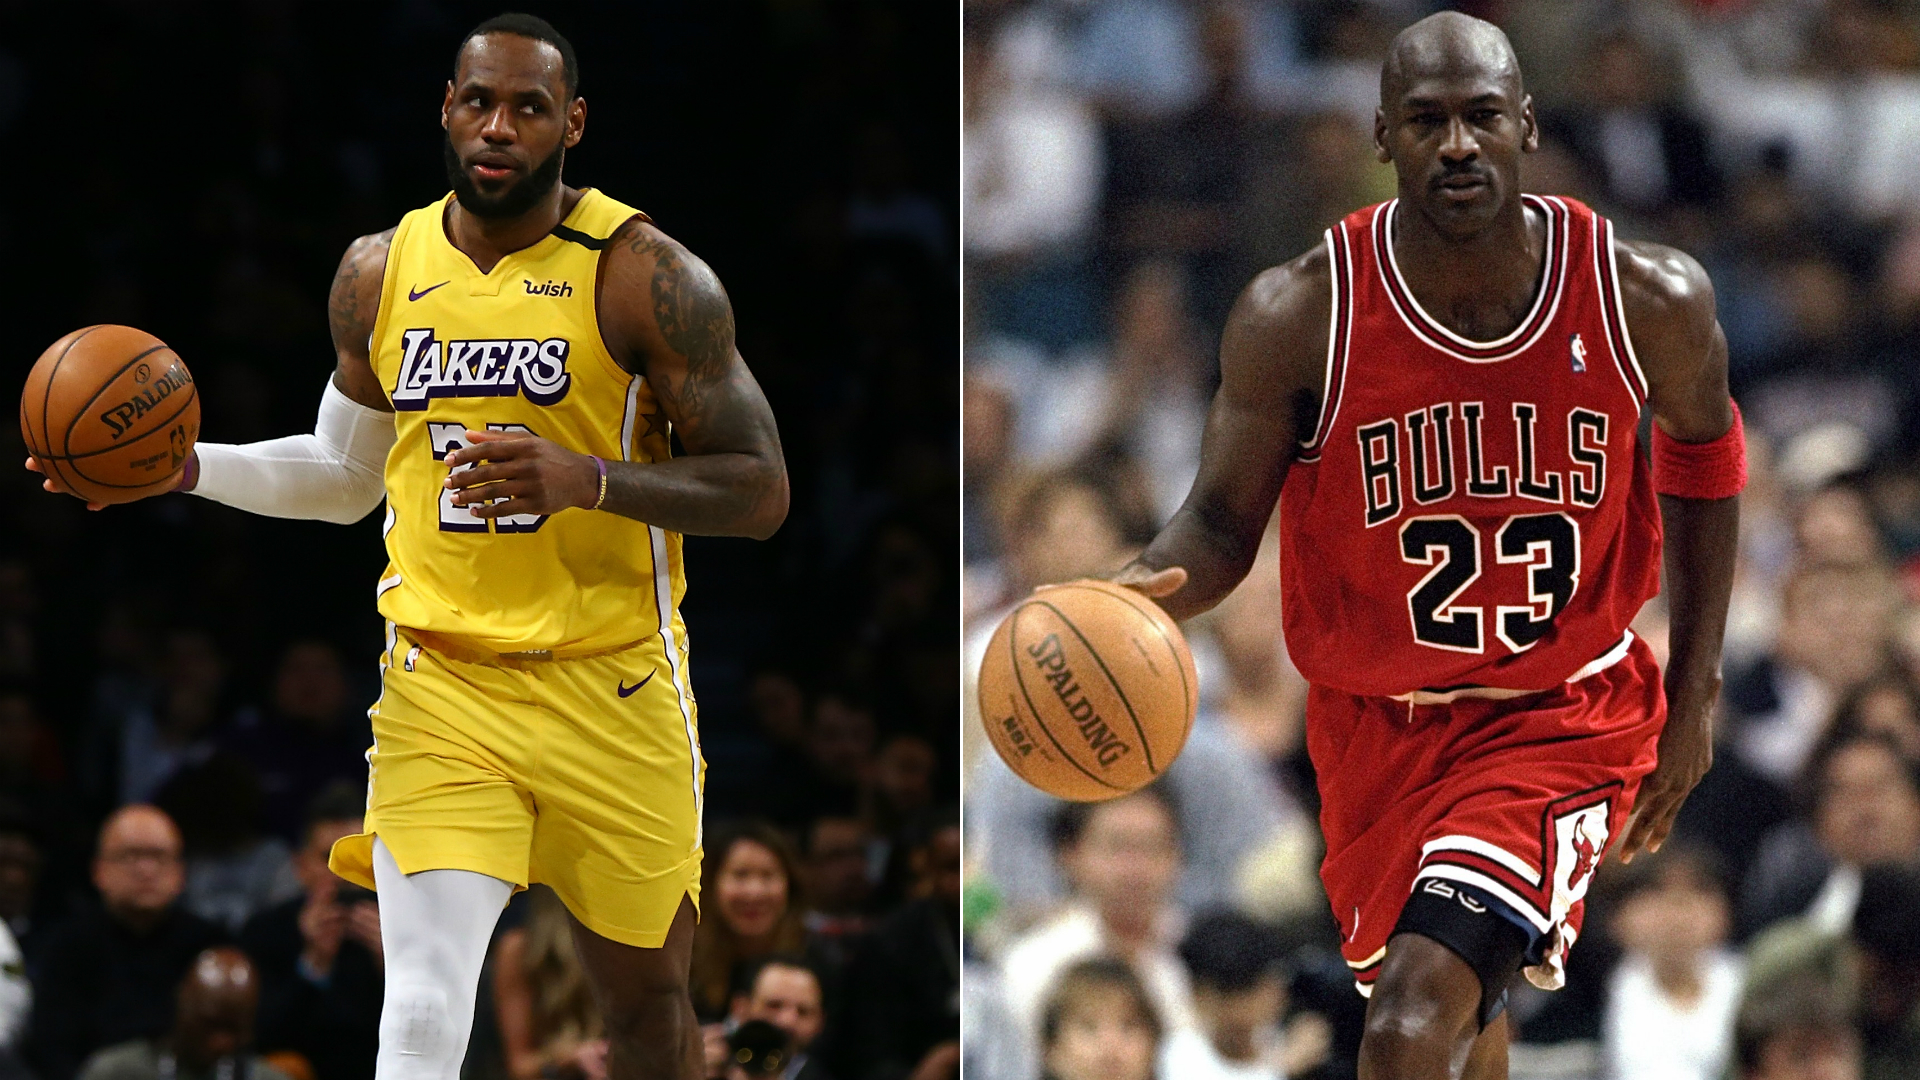 LeBron James: I would've worked perfectly with Michael Jordan